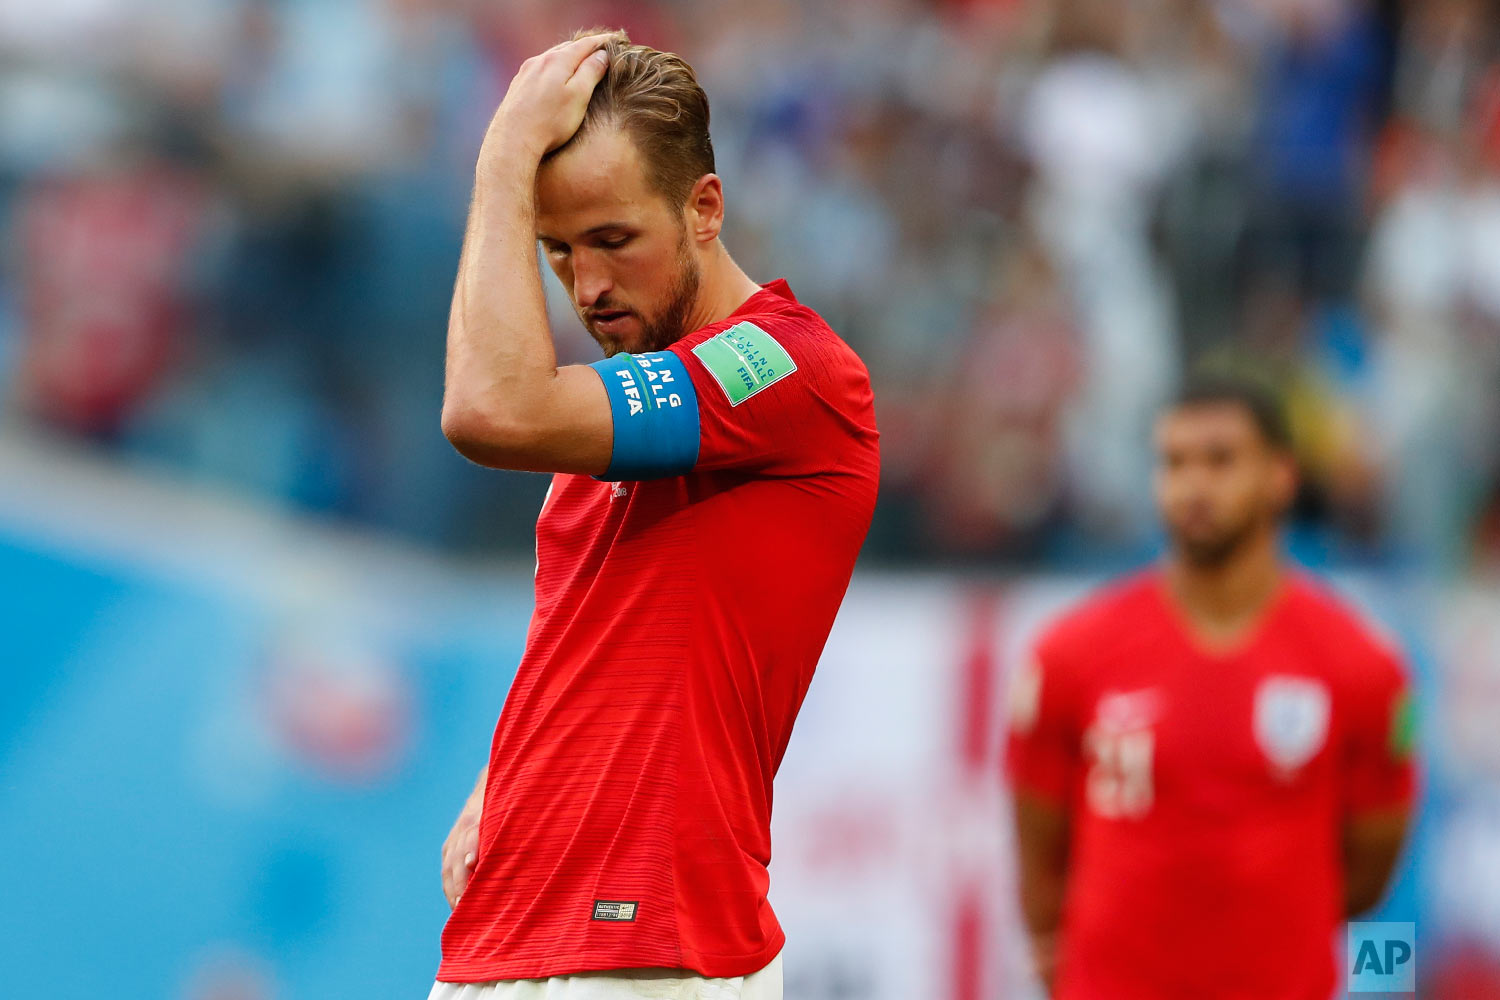 England's Harry Kane reacts after the third place match between England and Belgium at the 2018 soccer World Cup in the St. Petersburg Stadium in St. Petersburg, Russia, Saturday, July 14, 2018. (AP Photo/Natacha Pisarenko)